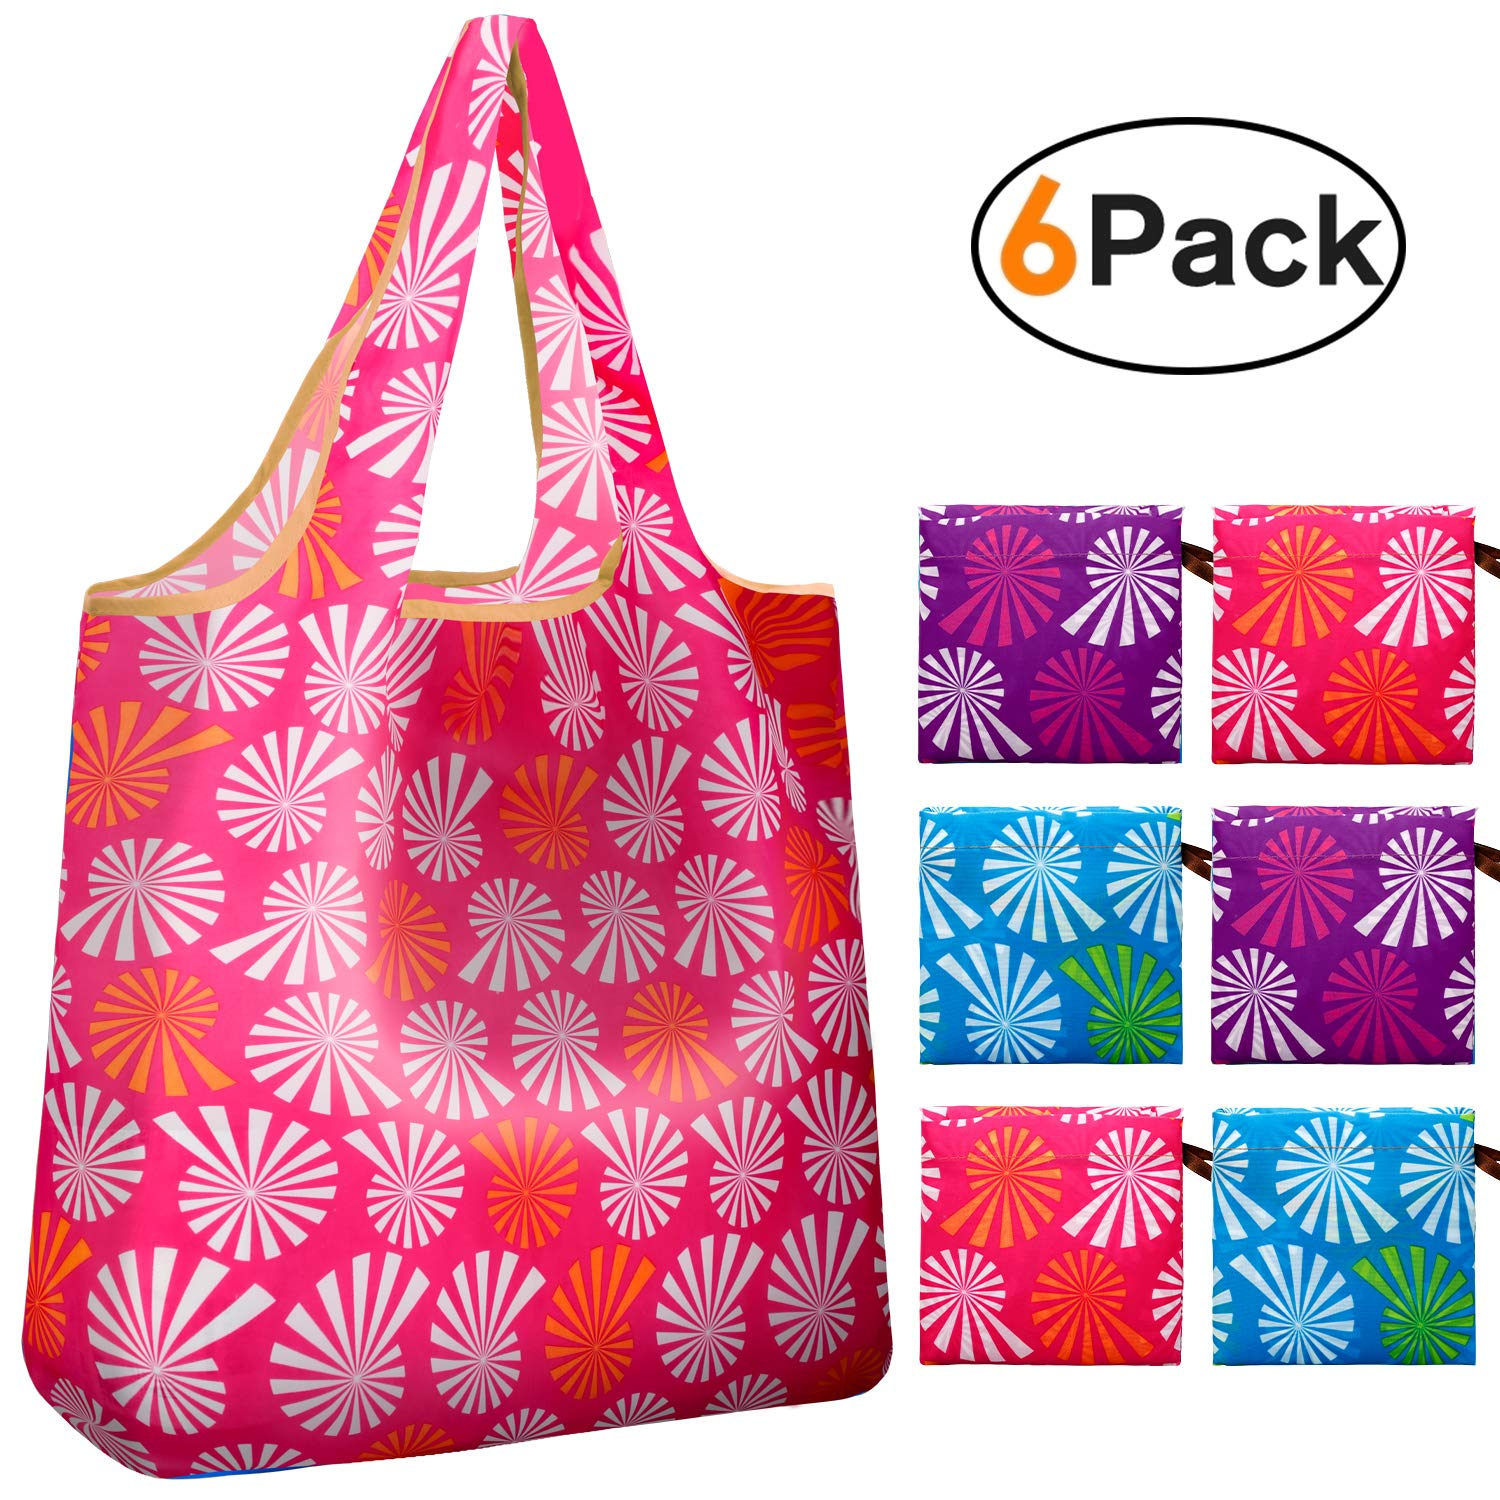 Canvas Bags Reusable Washable Patterns Print Eco-Friendly Recyclable Green Shopping Bags